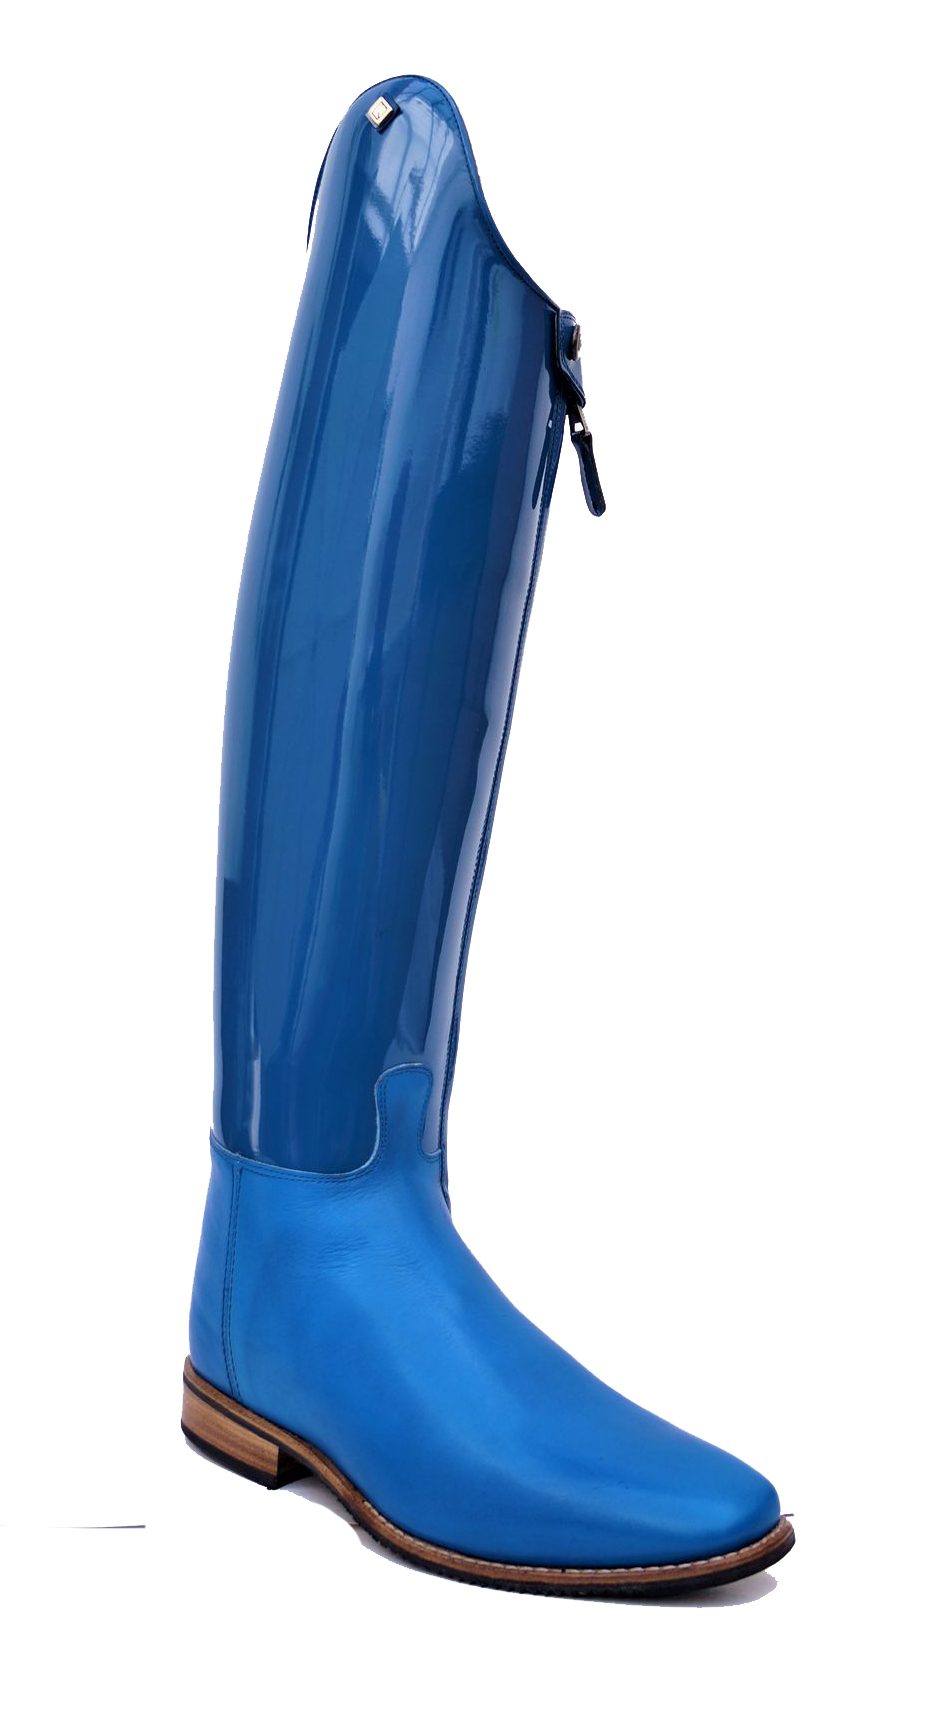 S8601_CLASSIC_PATENT_ECELCTRIC_BLUE_FOOT_BLUE_LUNETTA_EXTRA_ALTA_01-Kopie